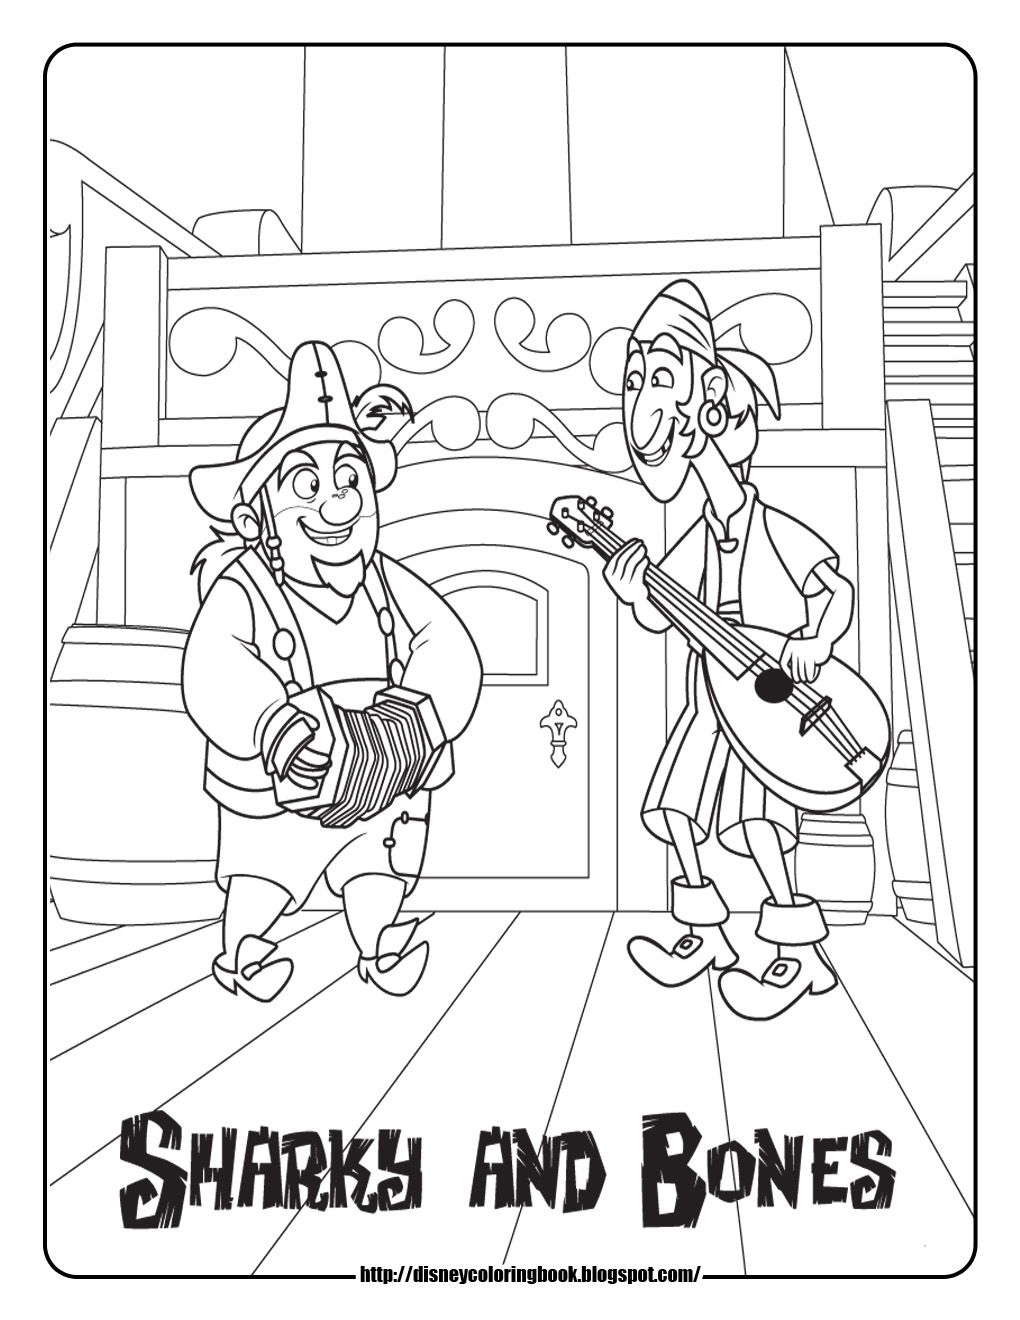 jake and the never land pirates coloring pages | Ridas first ...